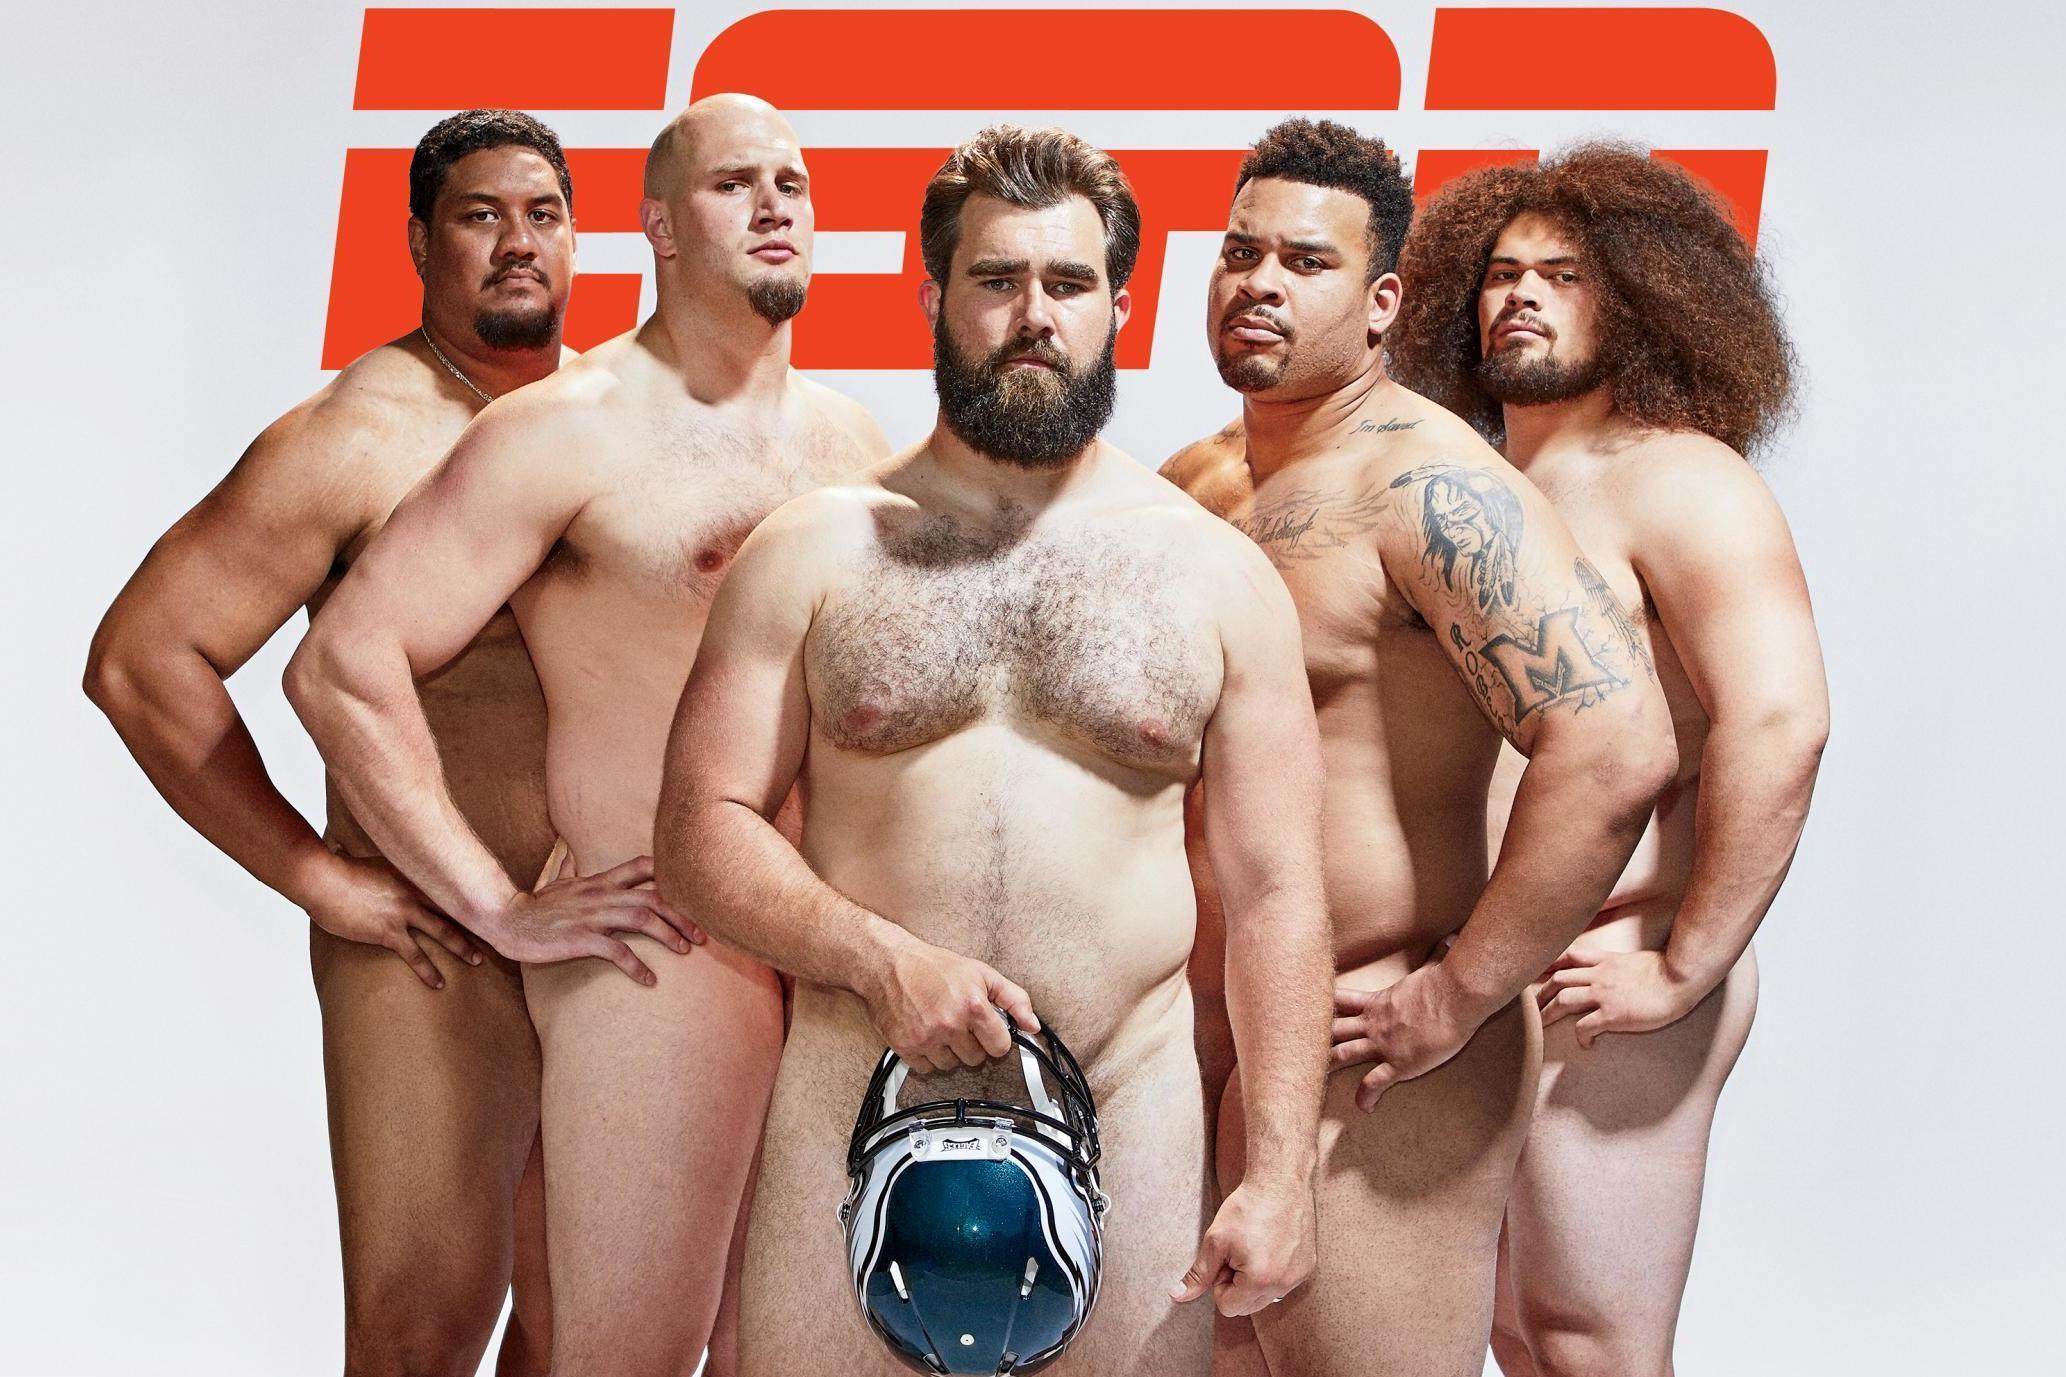 Philadelphia Eagles offensive linemen promote body positivity with nude photo shoot for ESPN's 'Body Issue'